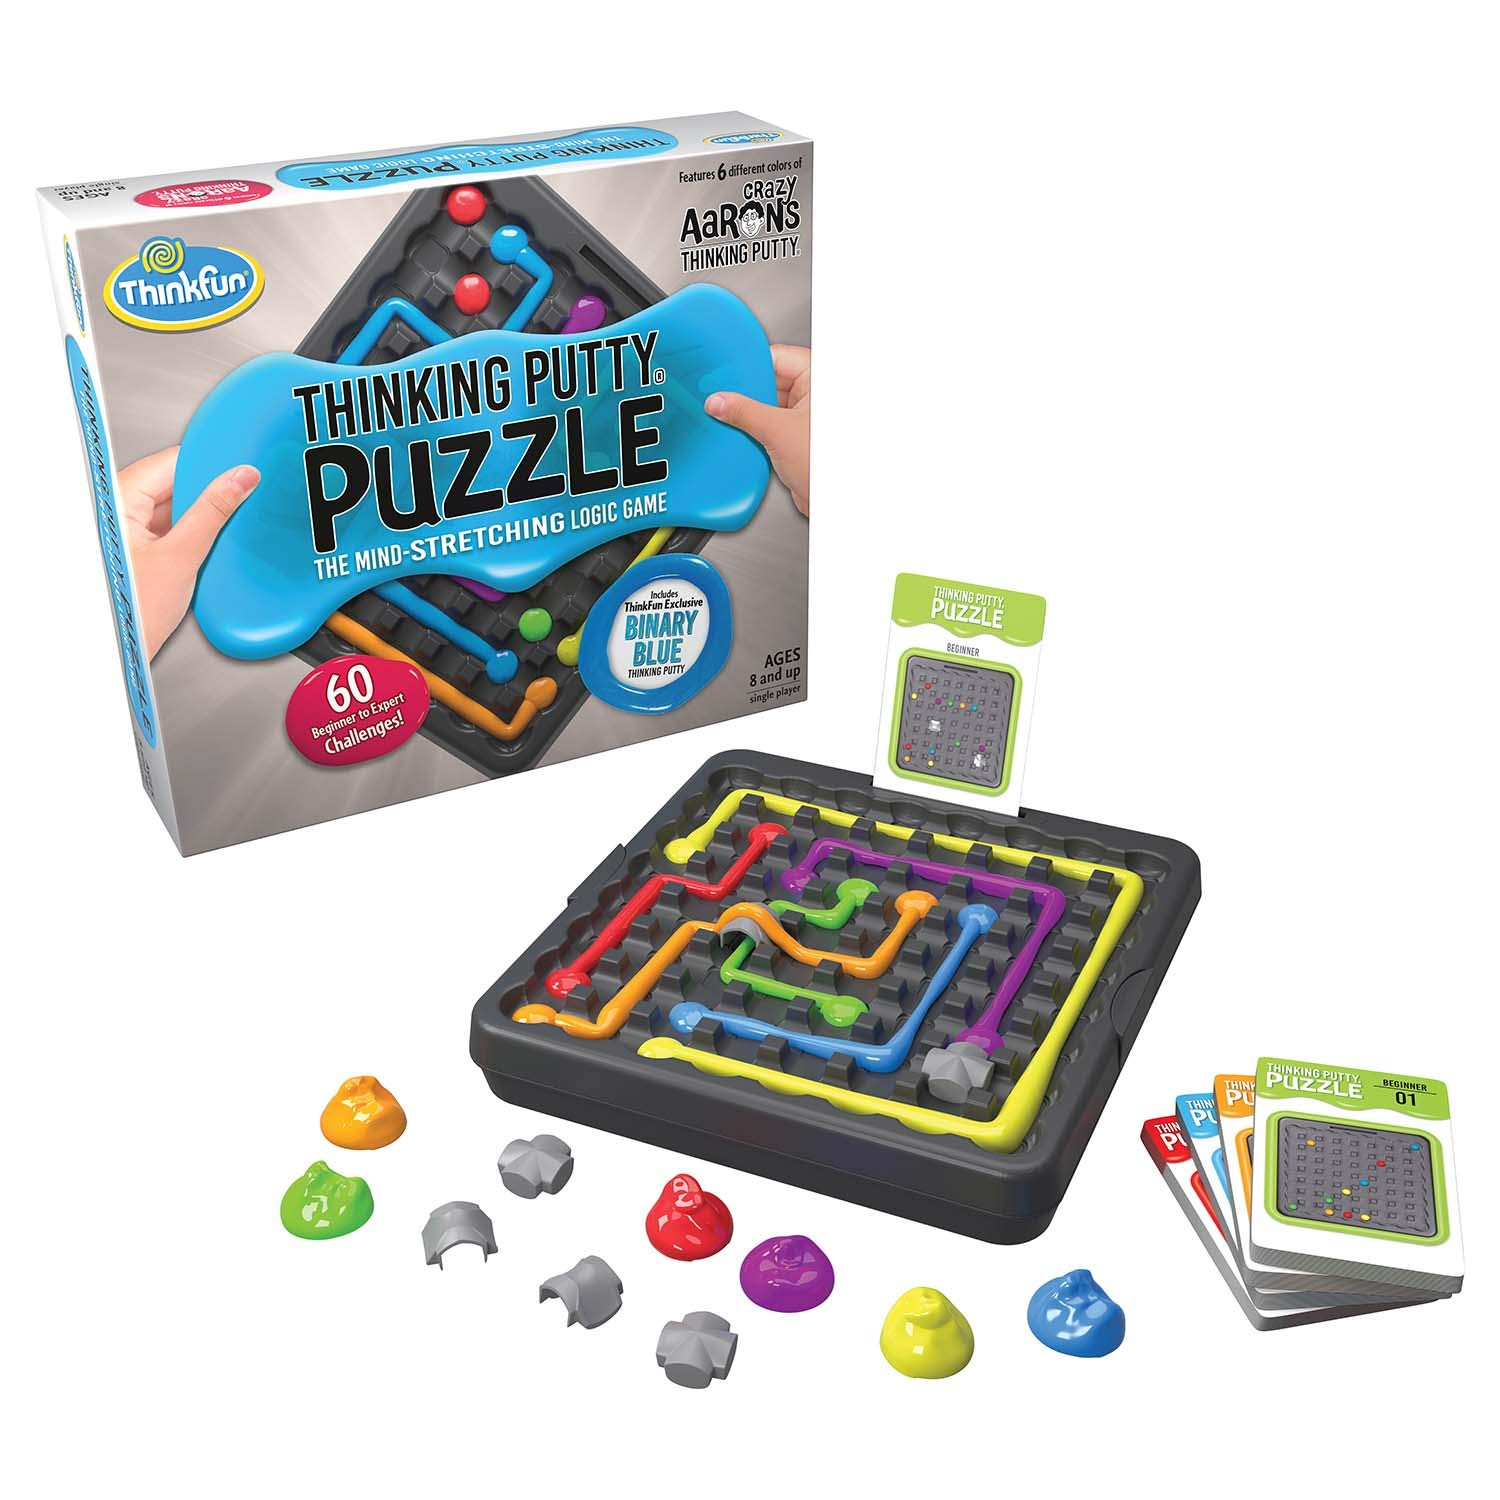 ThinkFun and Crazy Aaron's Thinking Putty Puzzle and STEM Toy for Boys and Girls Ages 8 and Up - The Famous Thinking Putty in Logic Game Form by Think Fun (Image #1)